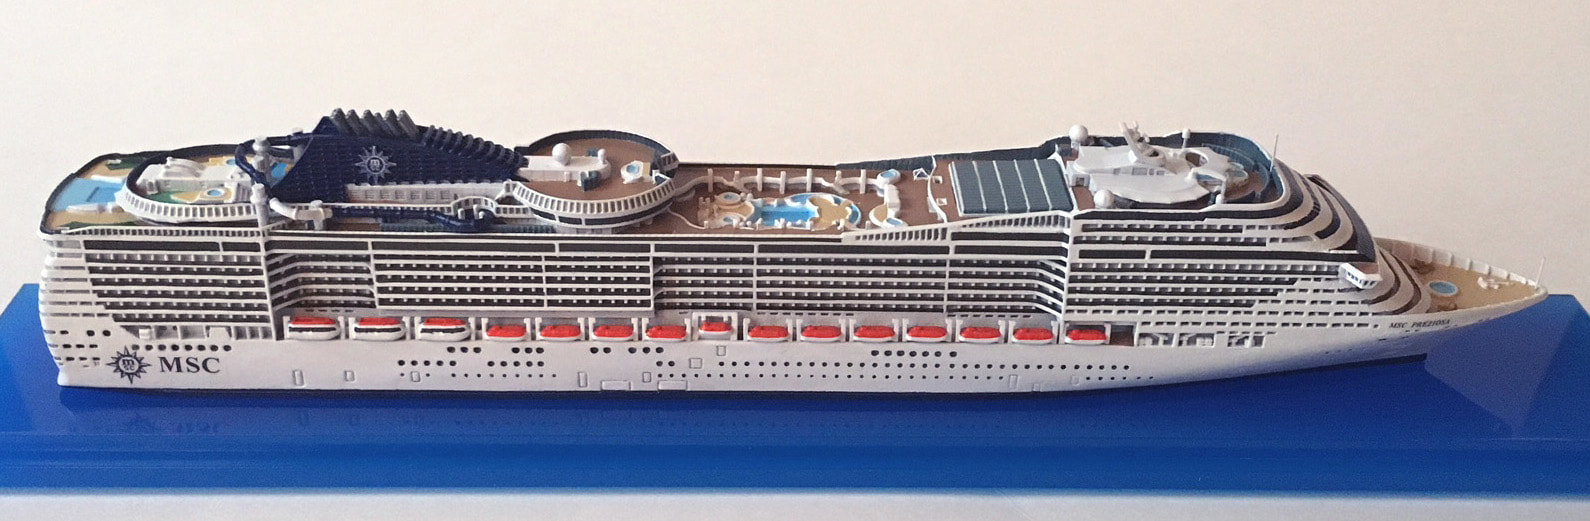 MSC Preziosa cruise ship model 1:1250 scalePicture